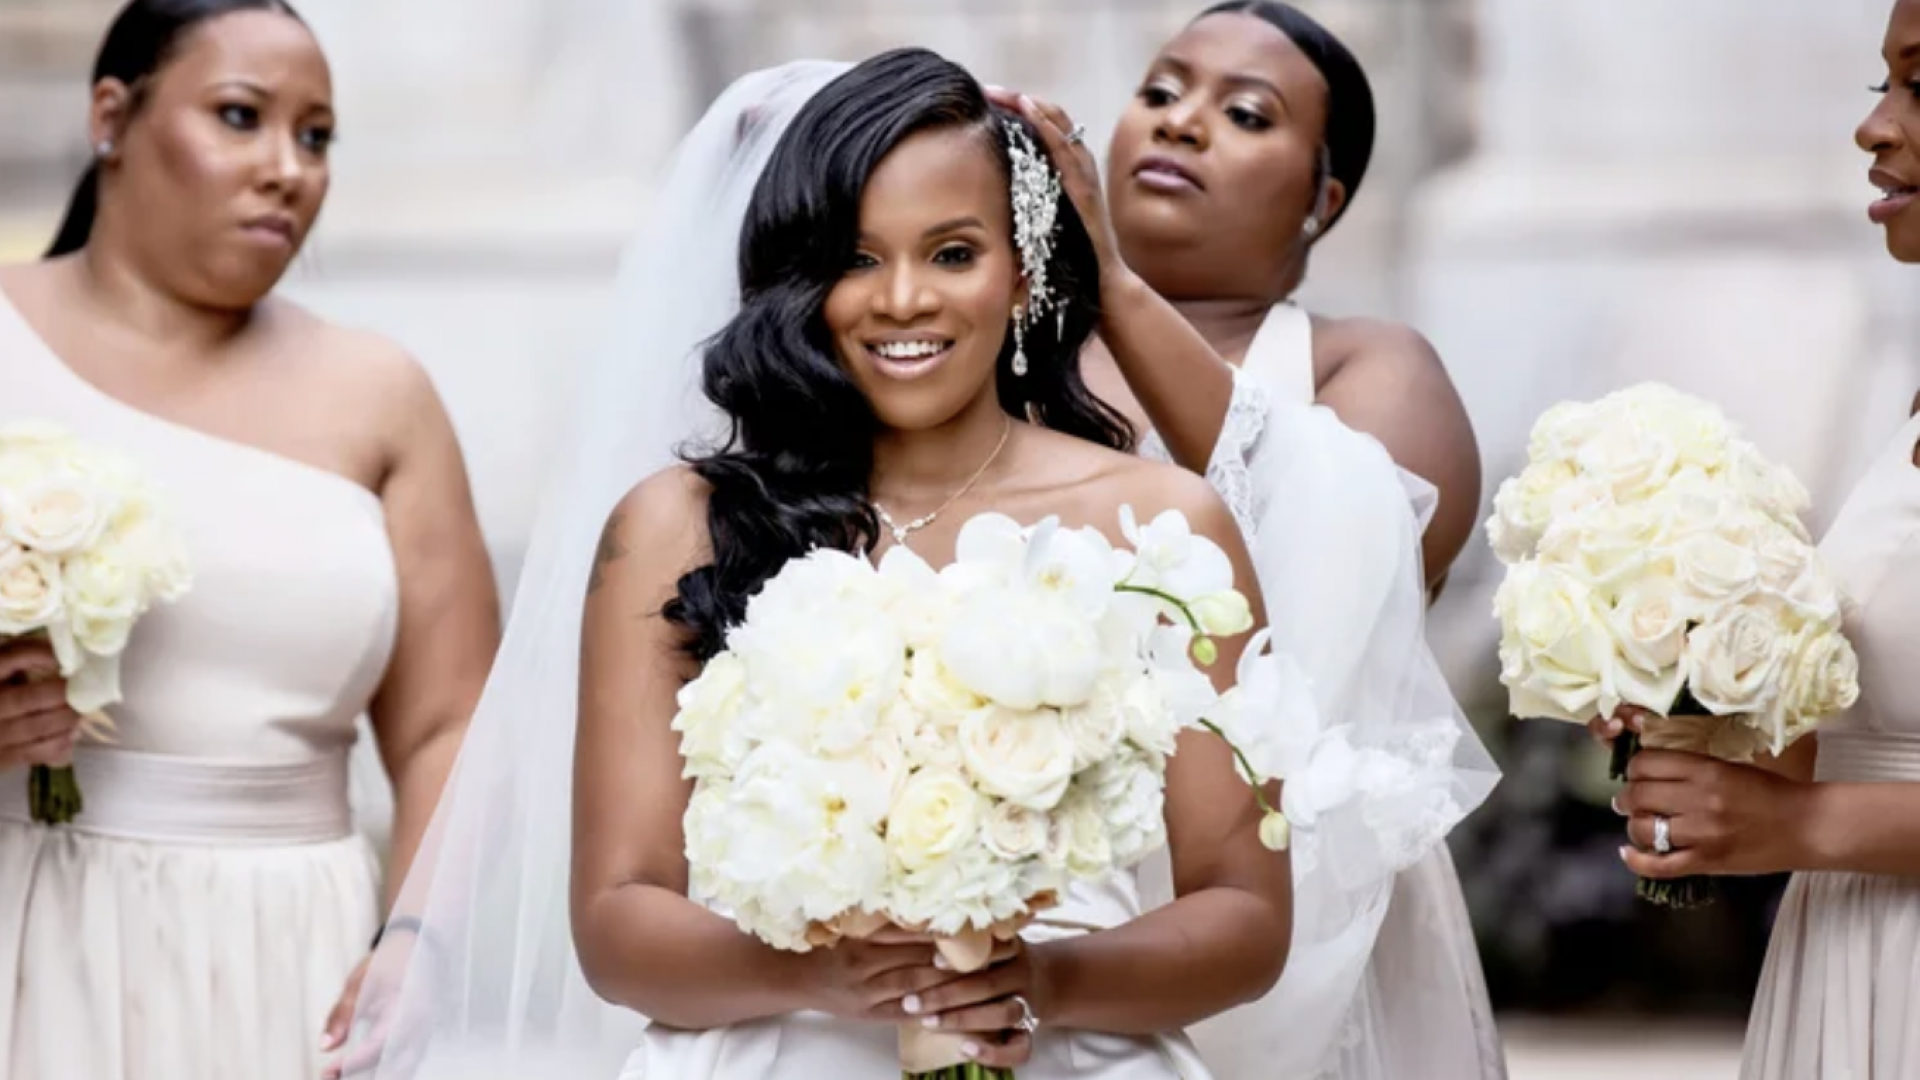 Bridal Bliss: 10 Sweet Photos Of Joyful Brides That Will Make Your Day